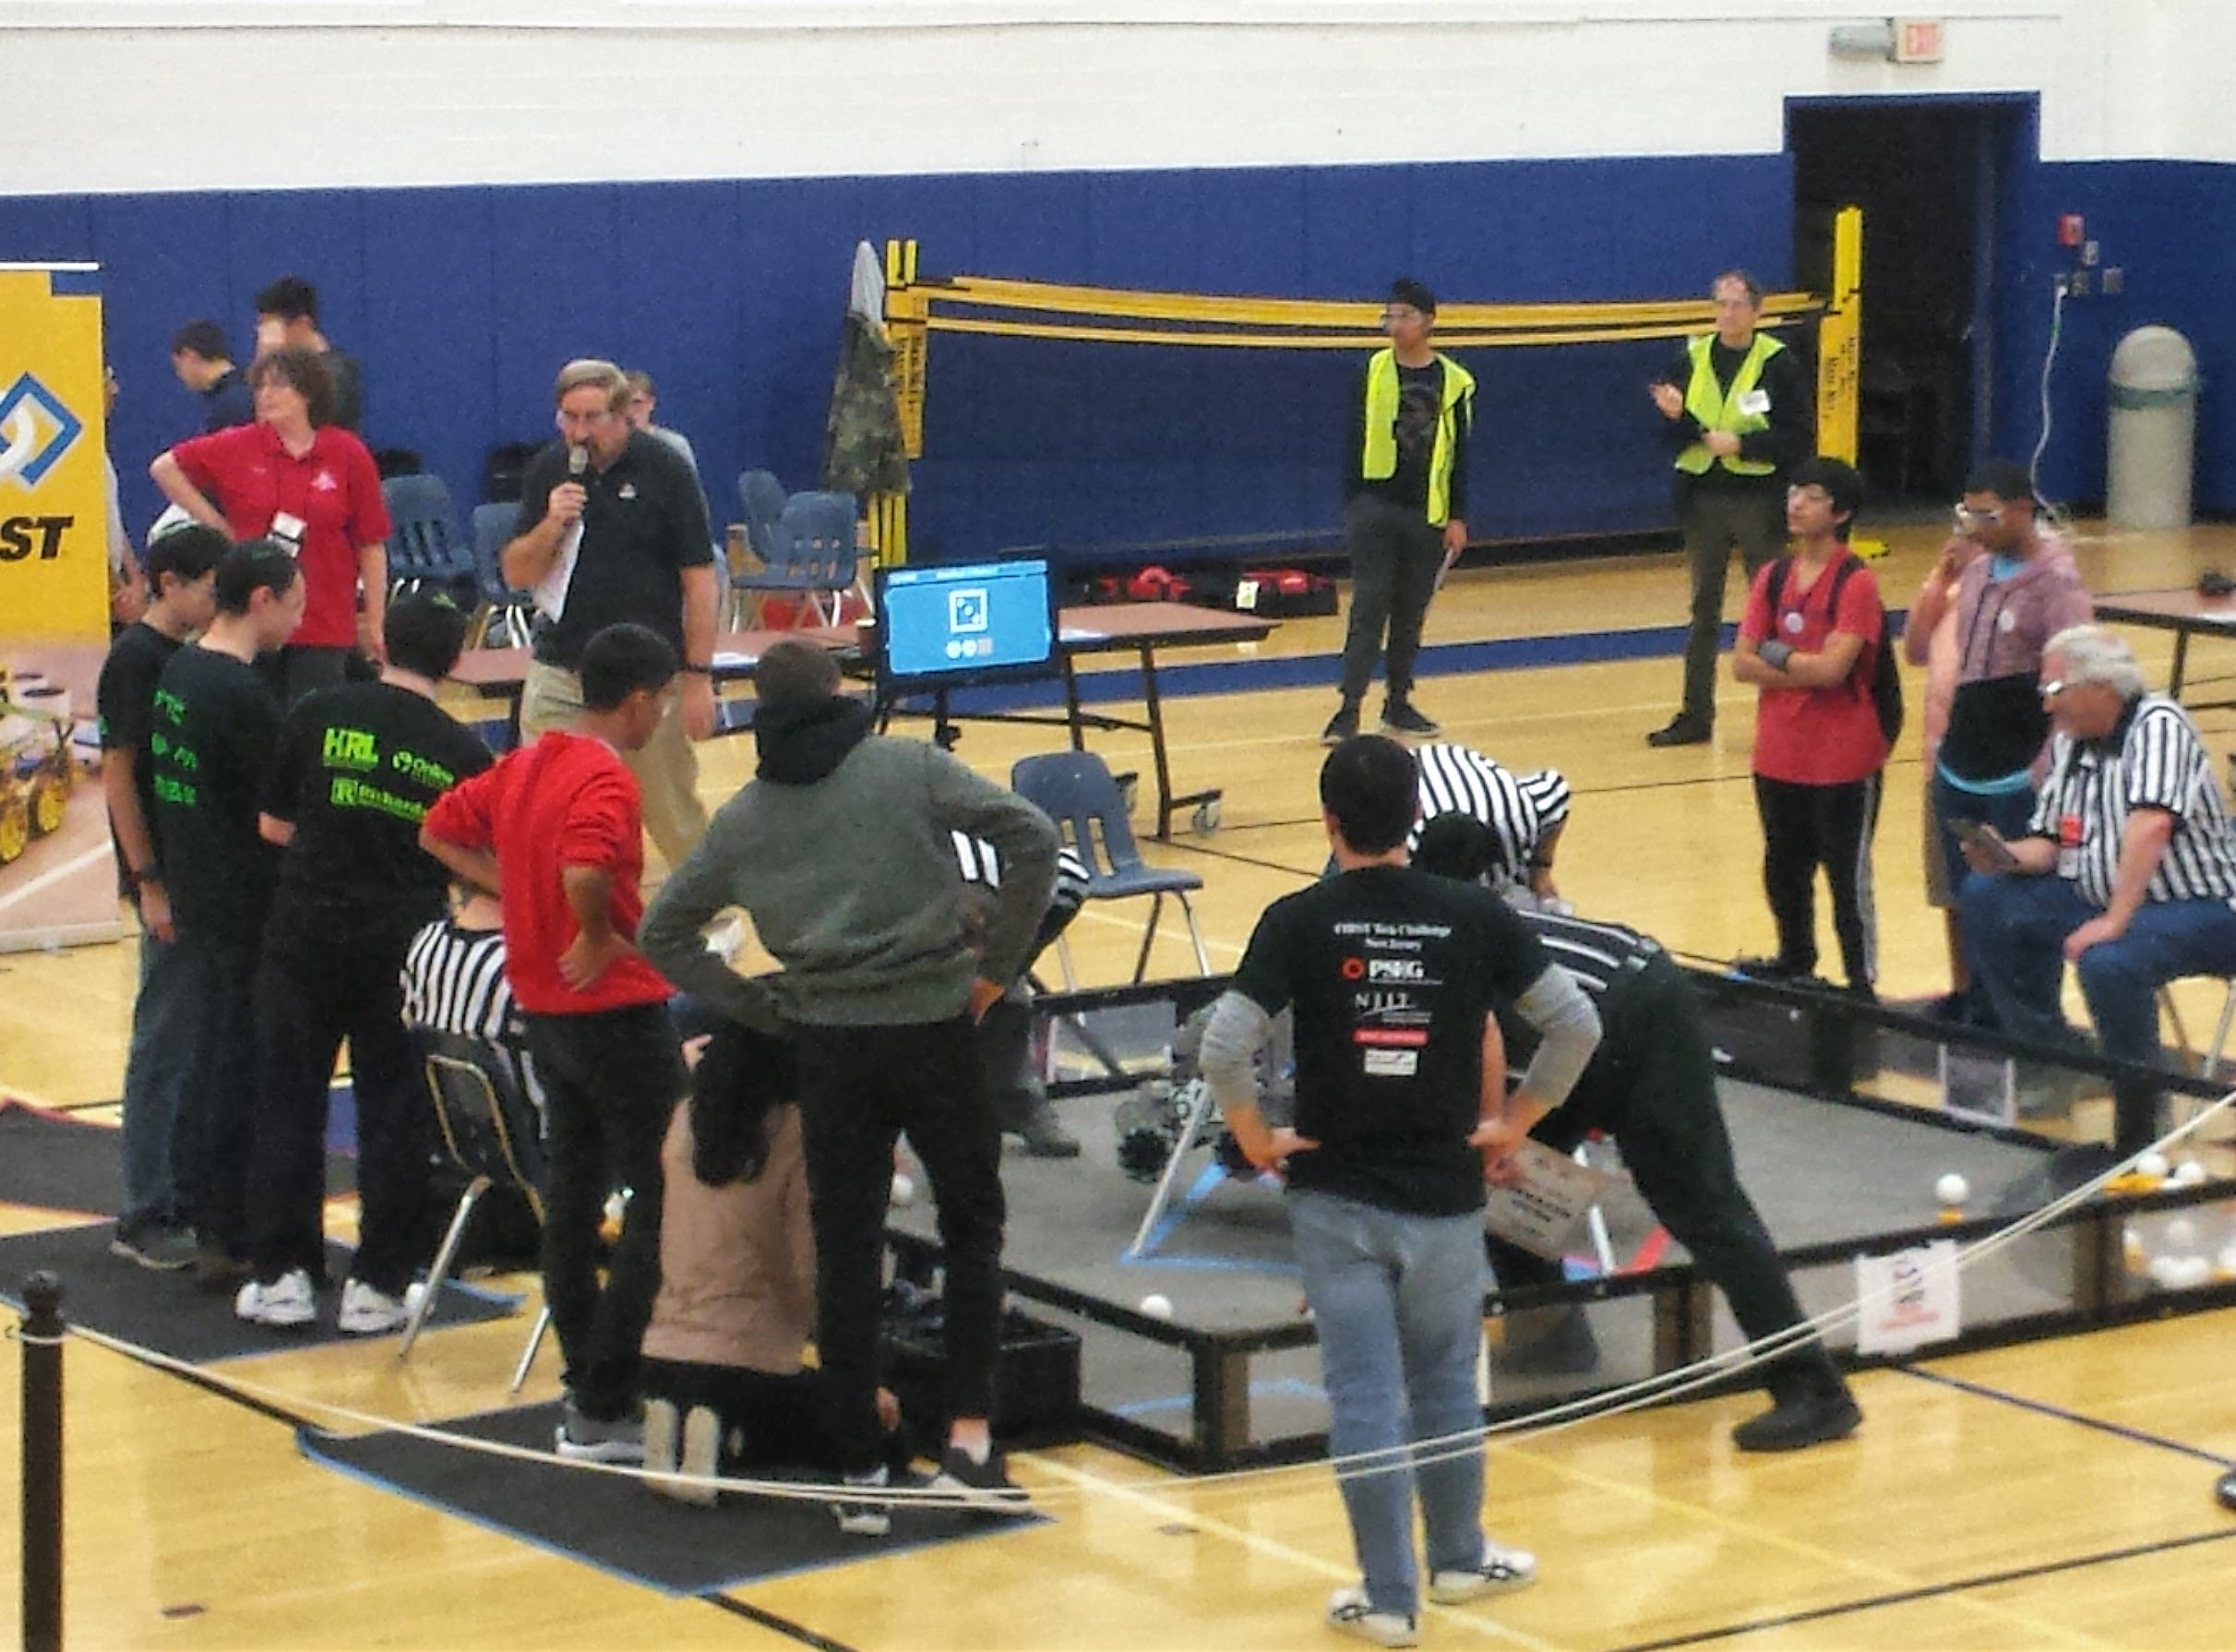 In its first tournament of the season, the Westfield Robotics Team, That Hertz, competed against 16 other New Jersey robotics teams at the FIRST Tech Challenge Robo-Ruckus on Sunday, Nov. 4 at Westfield High School.